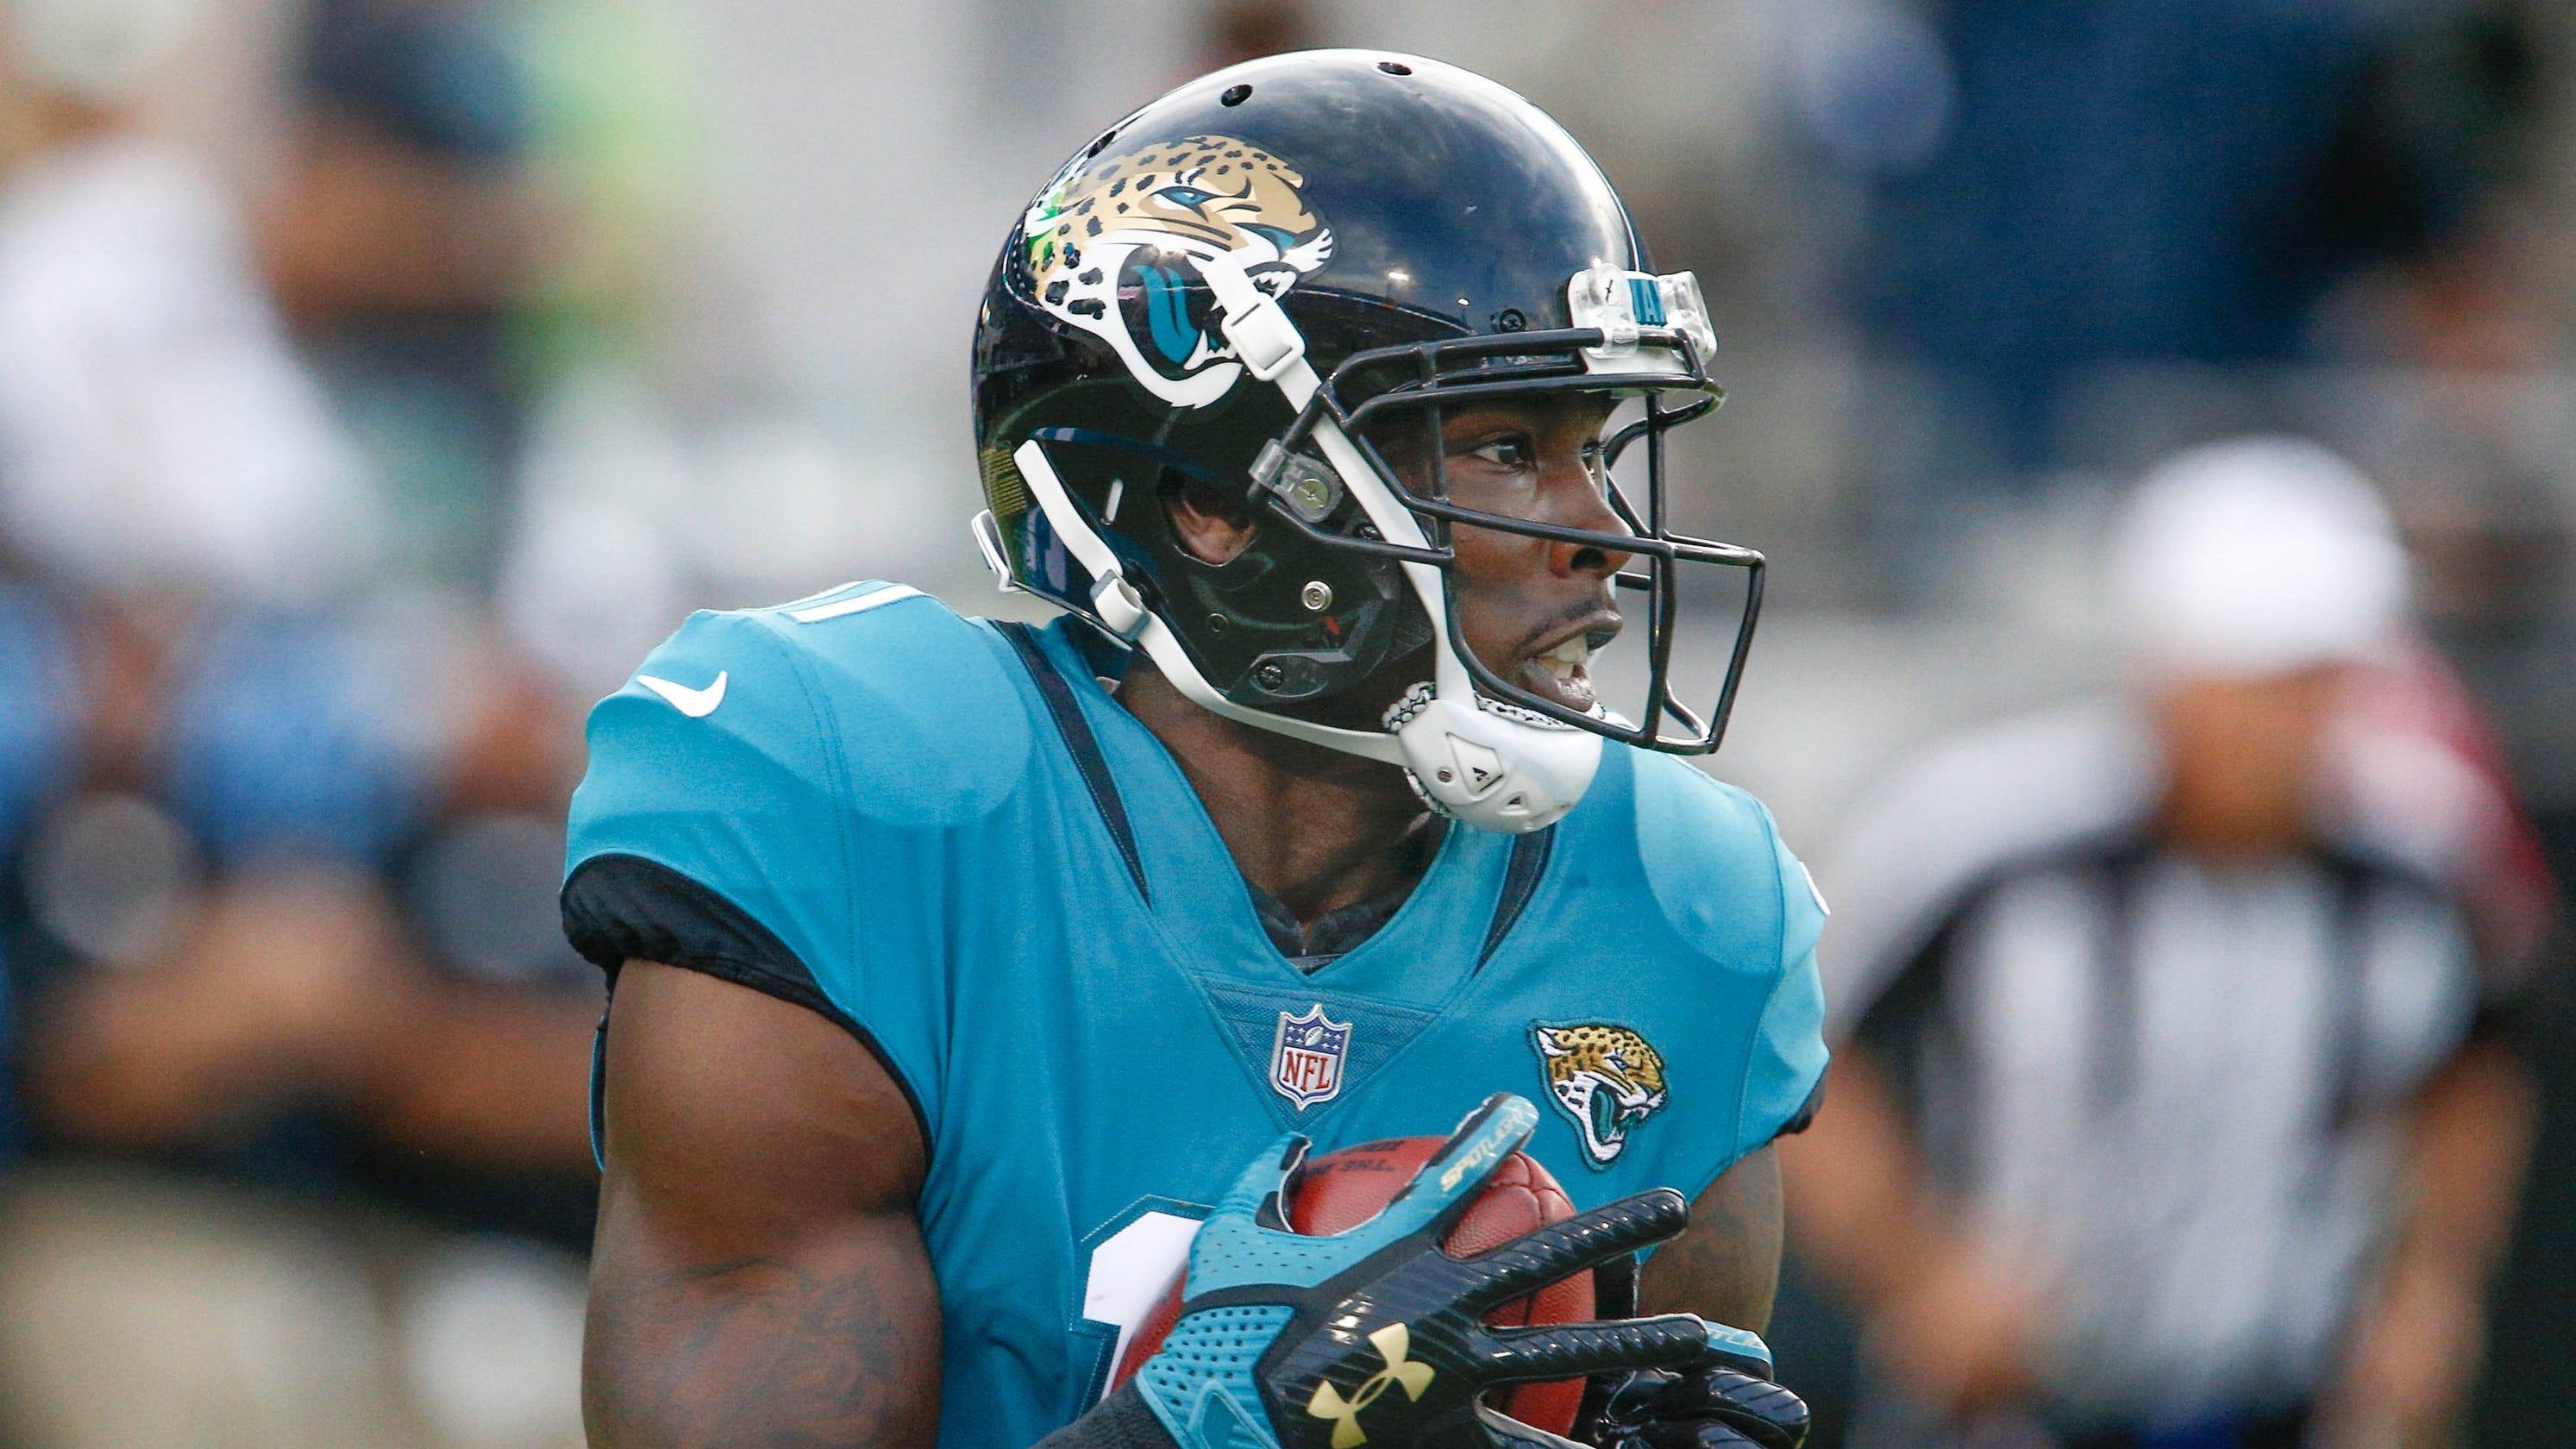 New England Patriots wide receiver Marqise Lee opts out of 2020 season